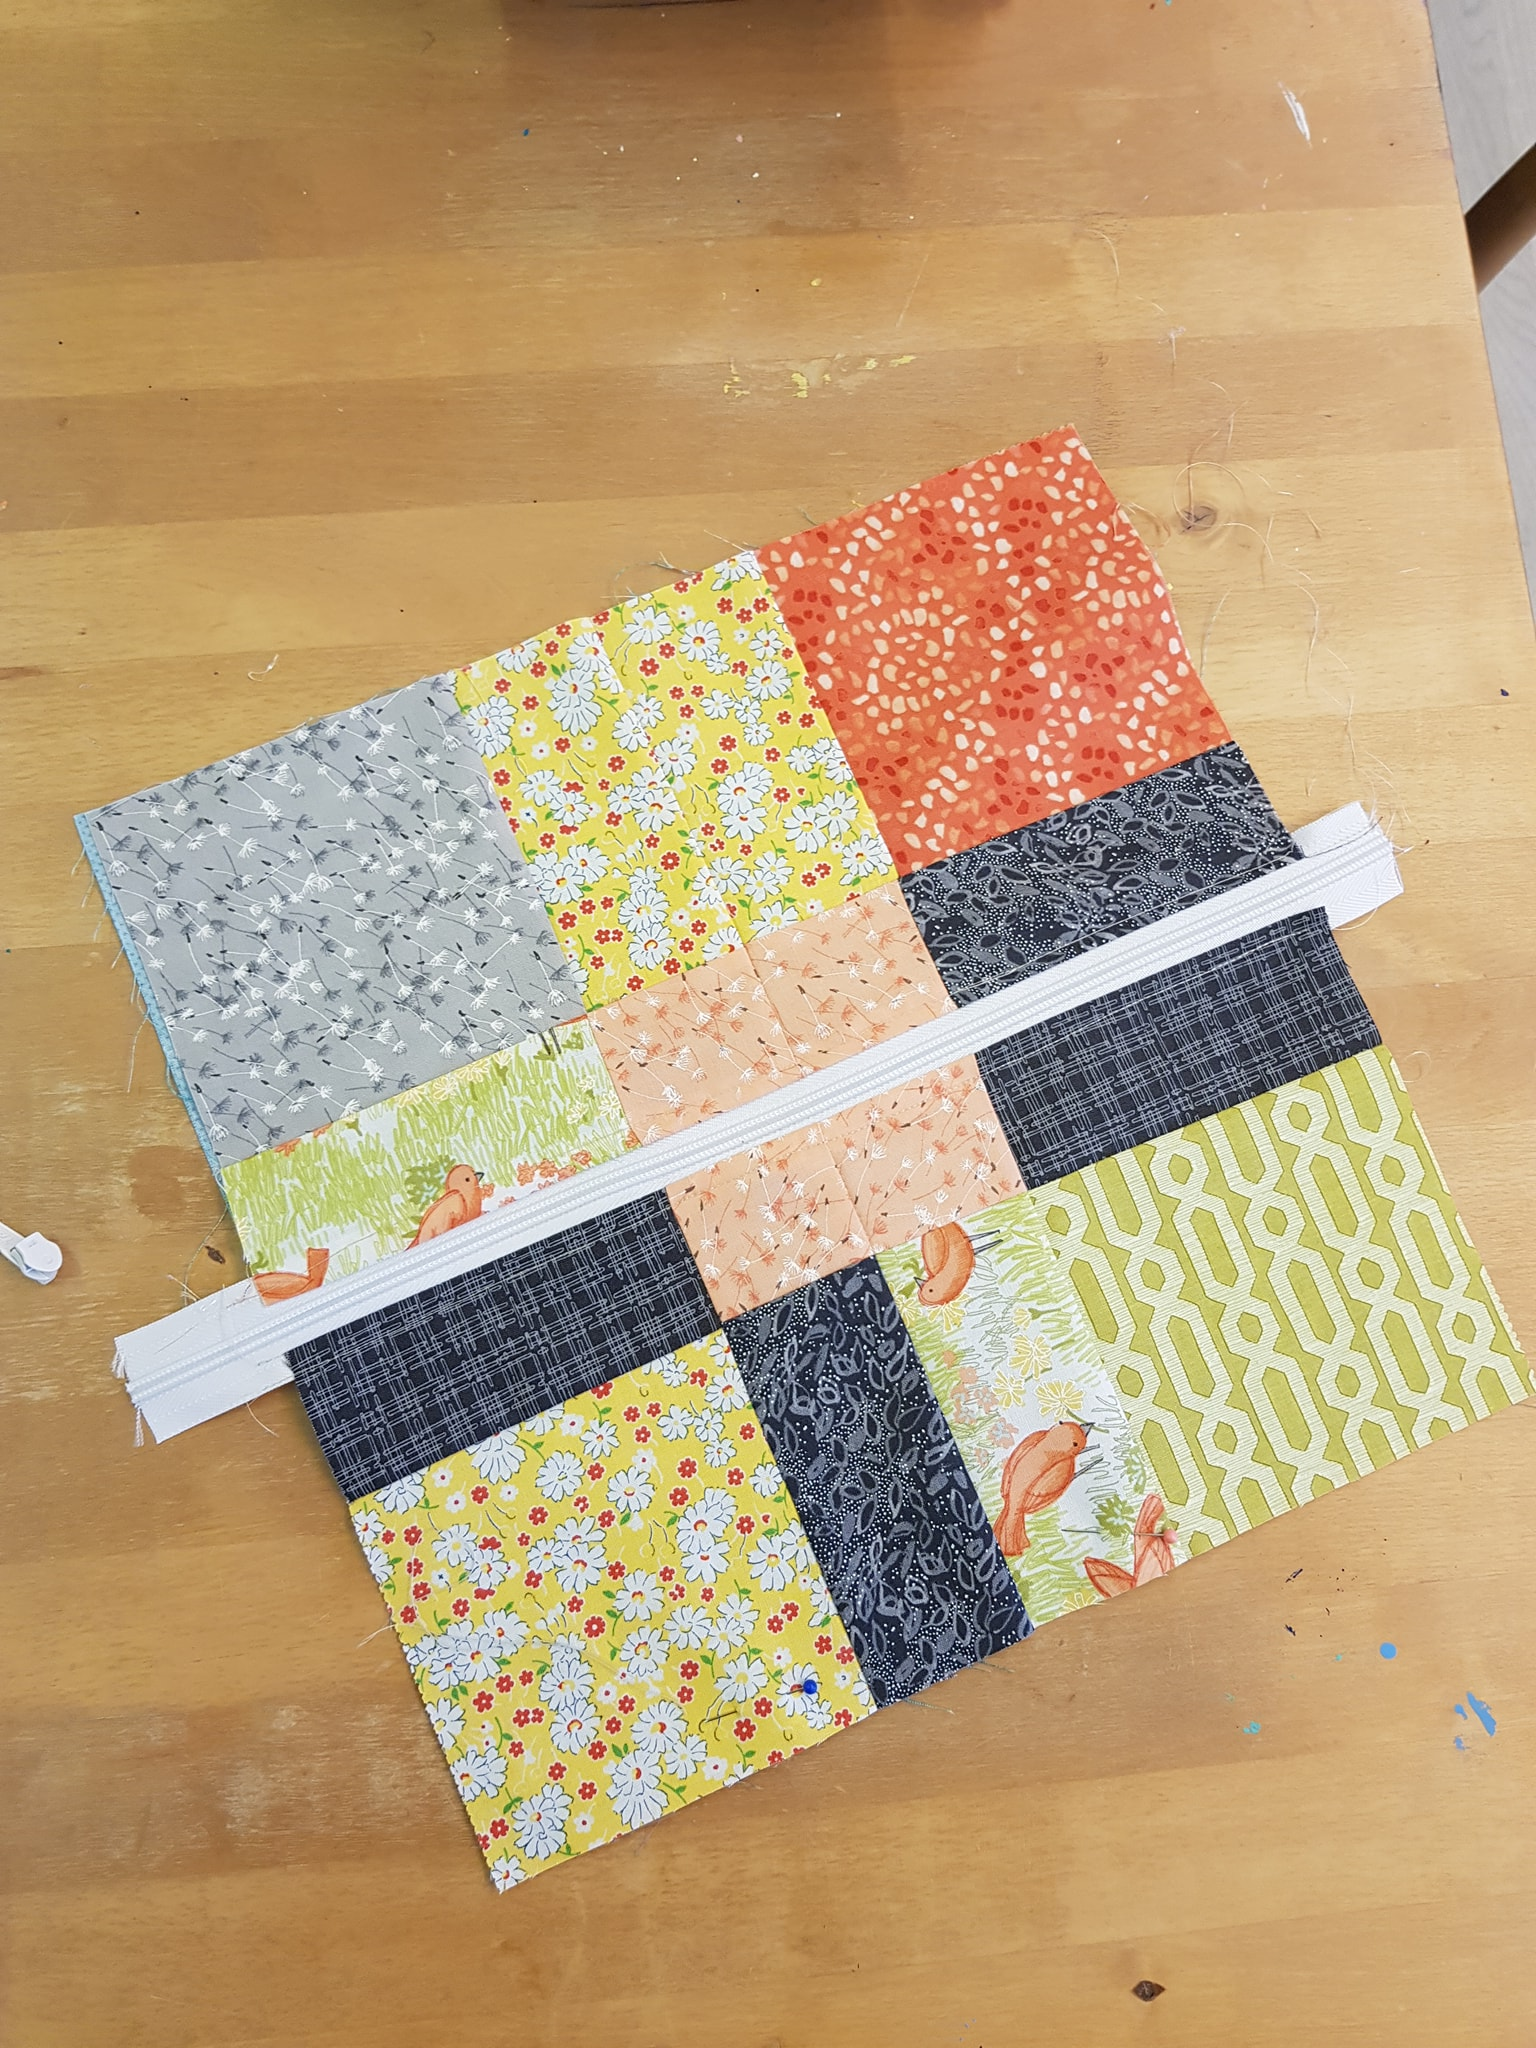 Evening Sewing for Complete Beginners: Tuesdays 7.30-9.30pm